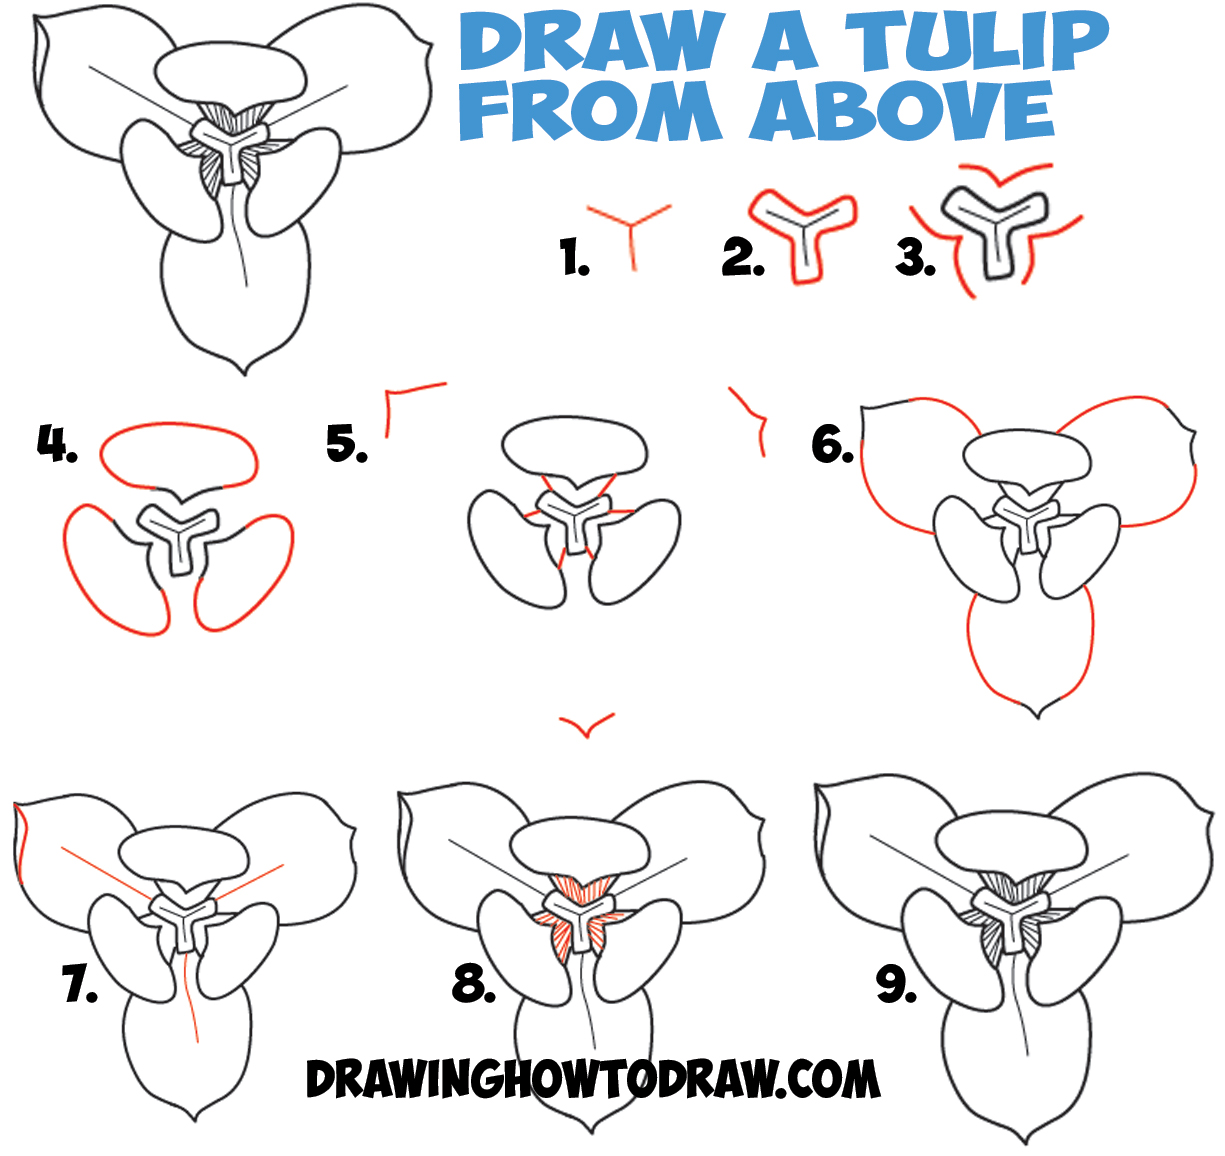 How to Draw Tulips from Above in Aerial View